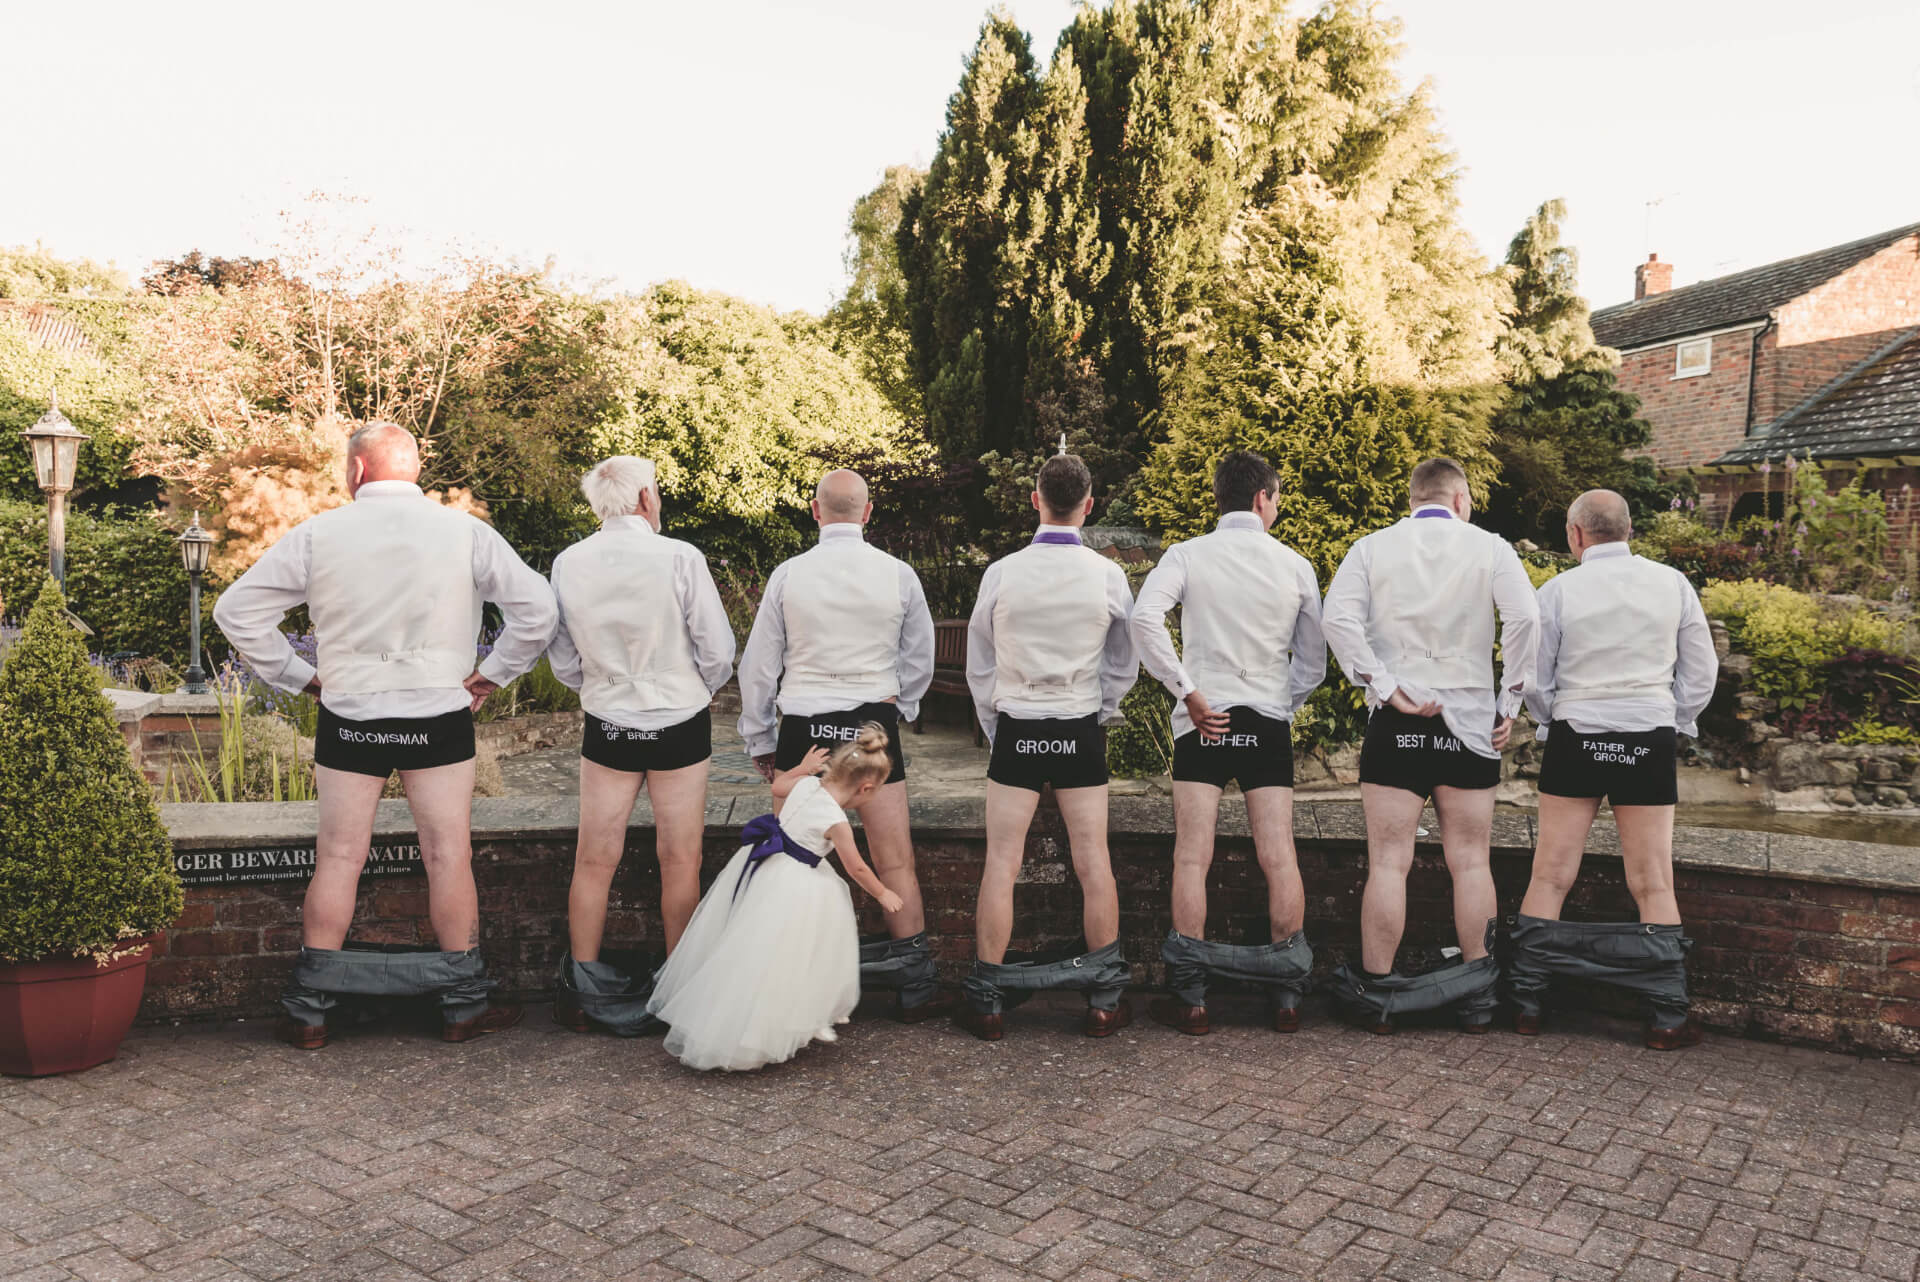 Groomsman flash their named wedding party underwear whilst flower girl looks on at Whaplode Manor wedding reception - photograph by Slice of Life Photography,Lincolnshire wedding photographer